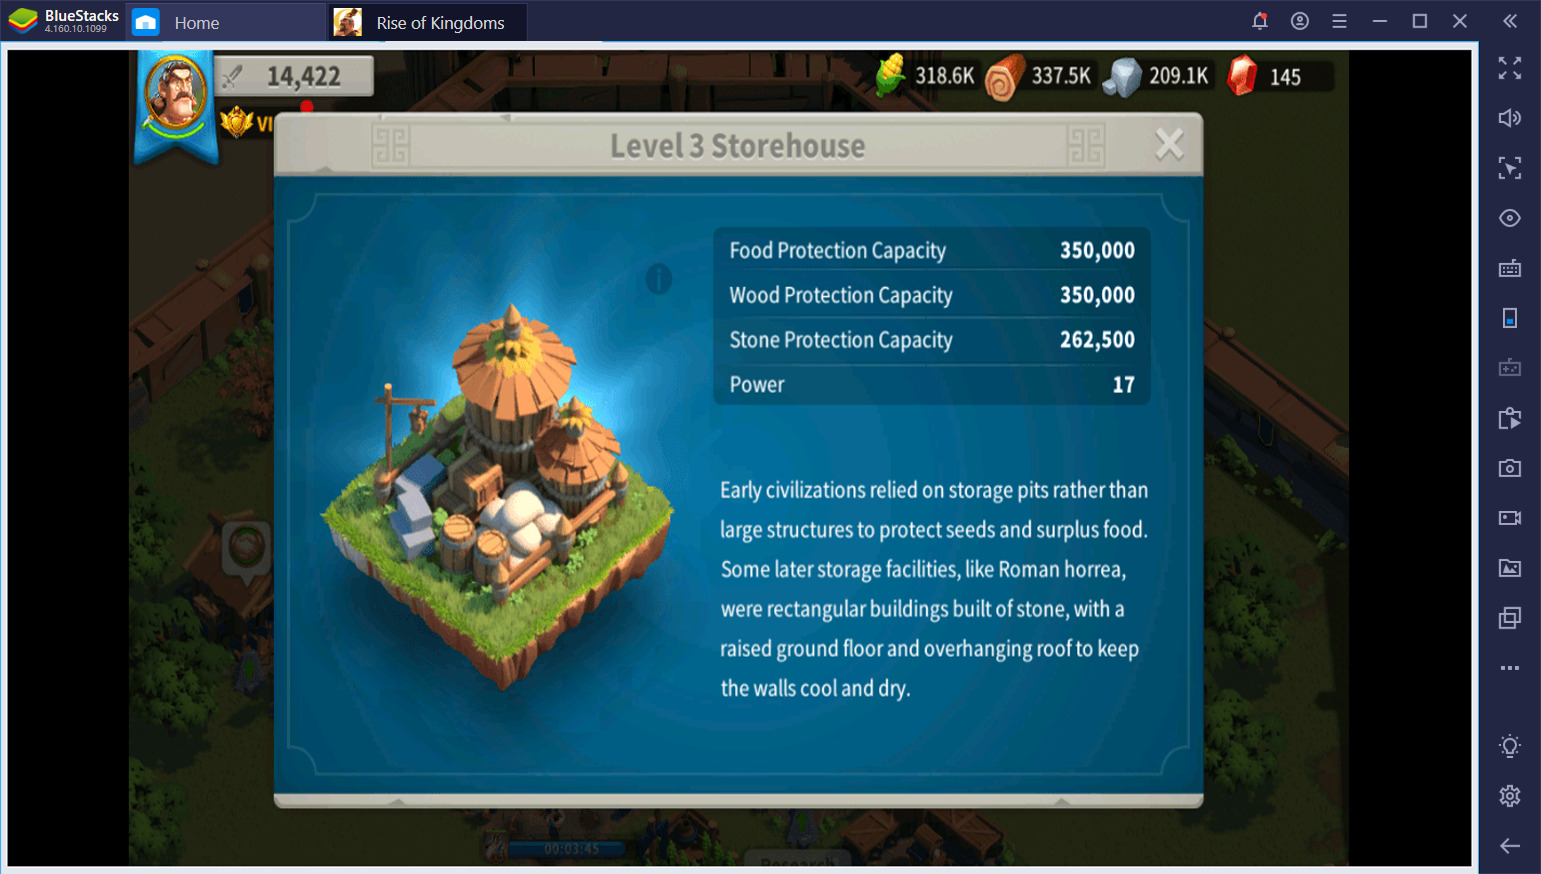 Get Answers to the Top FAQs about Playing Rise of Kingdoms on PC